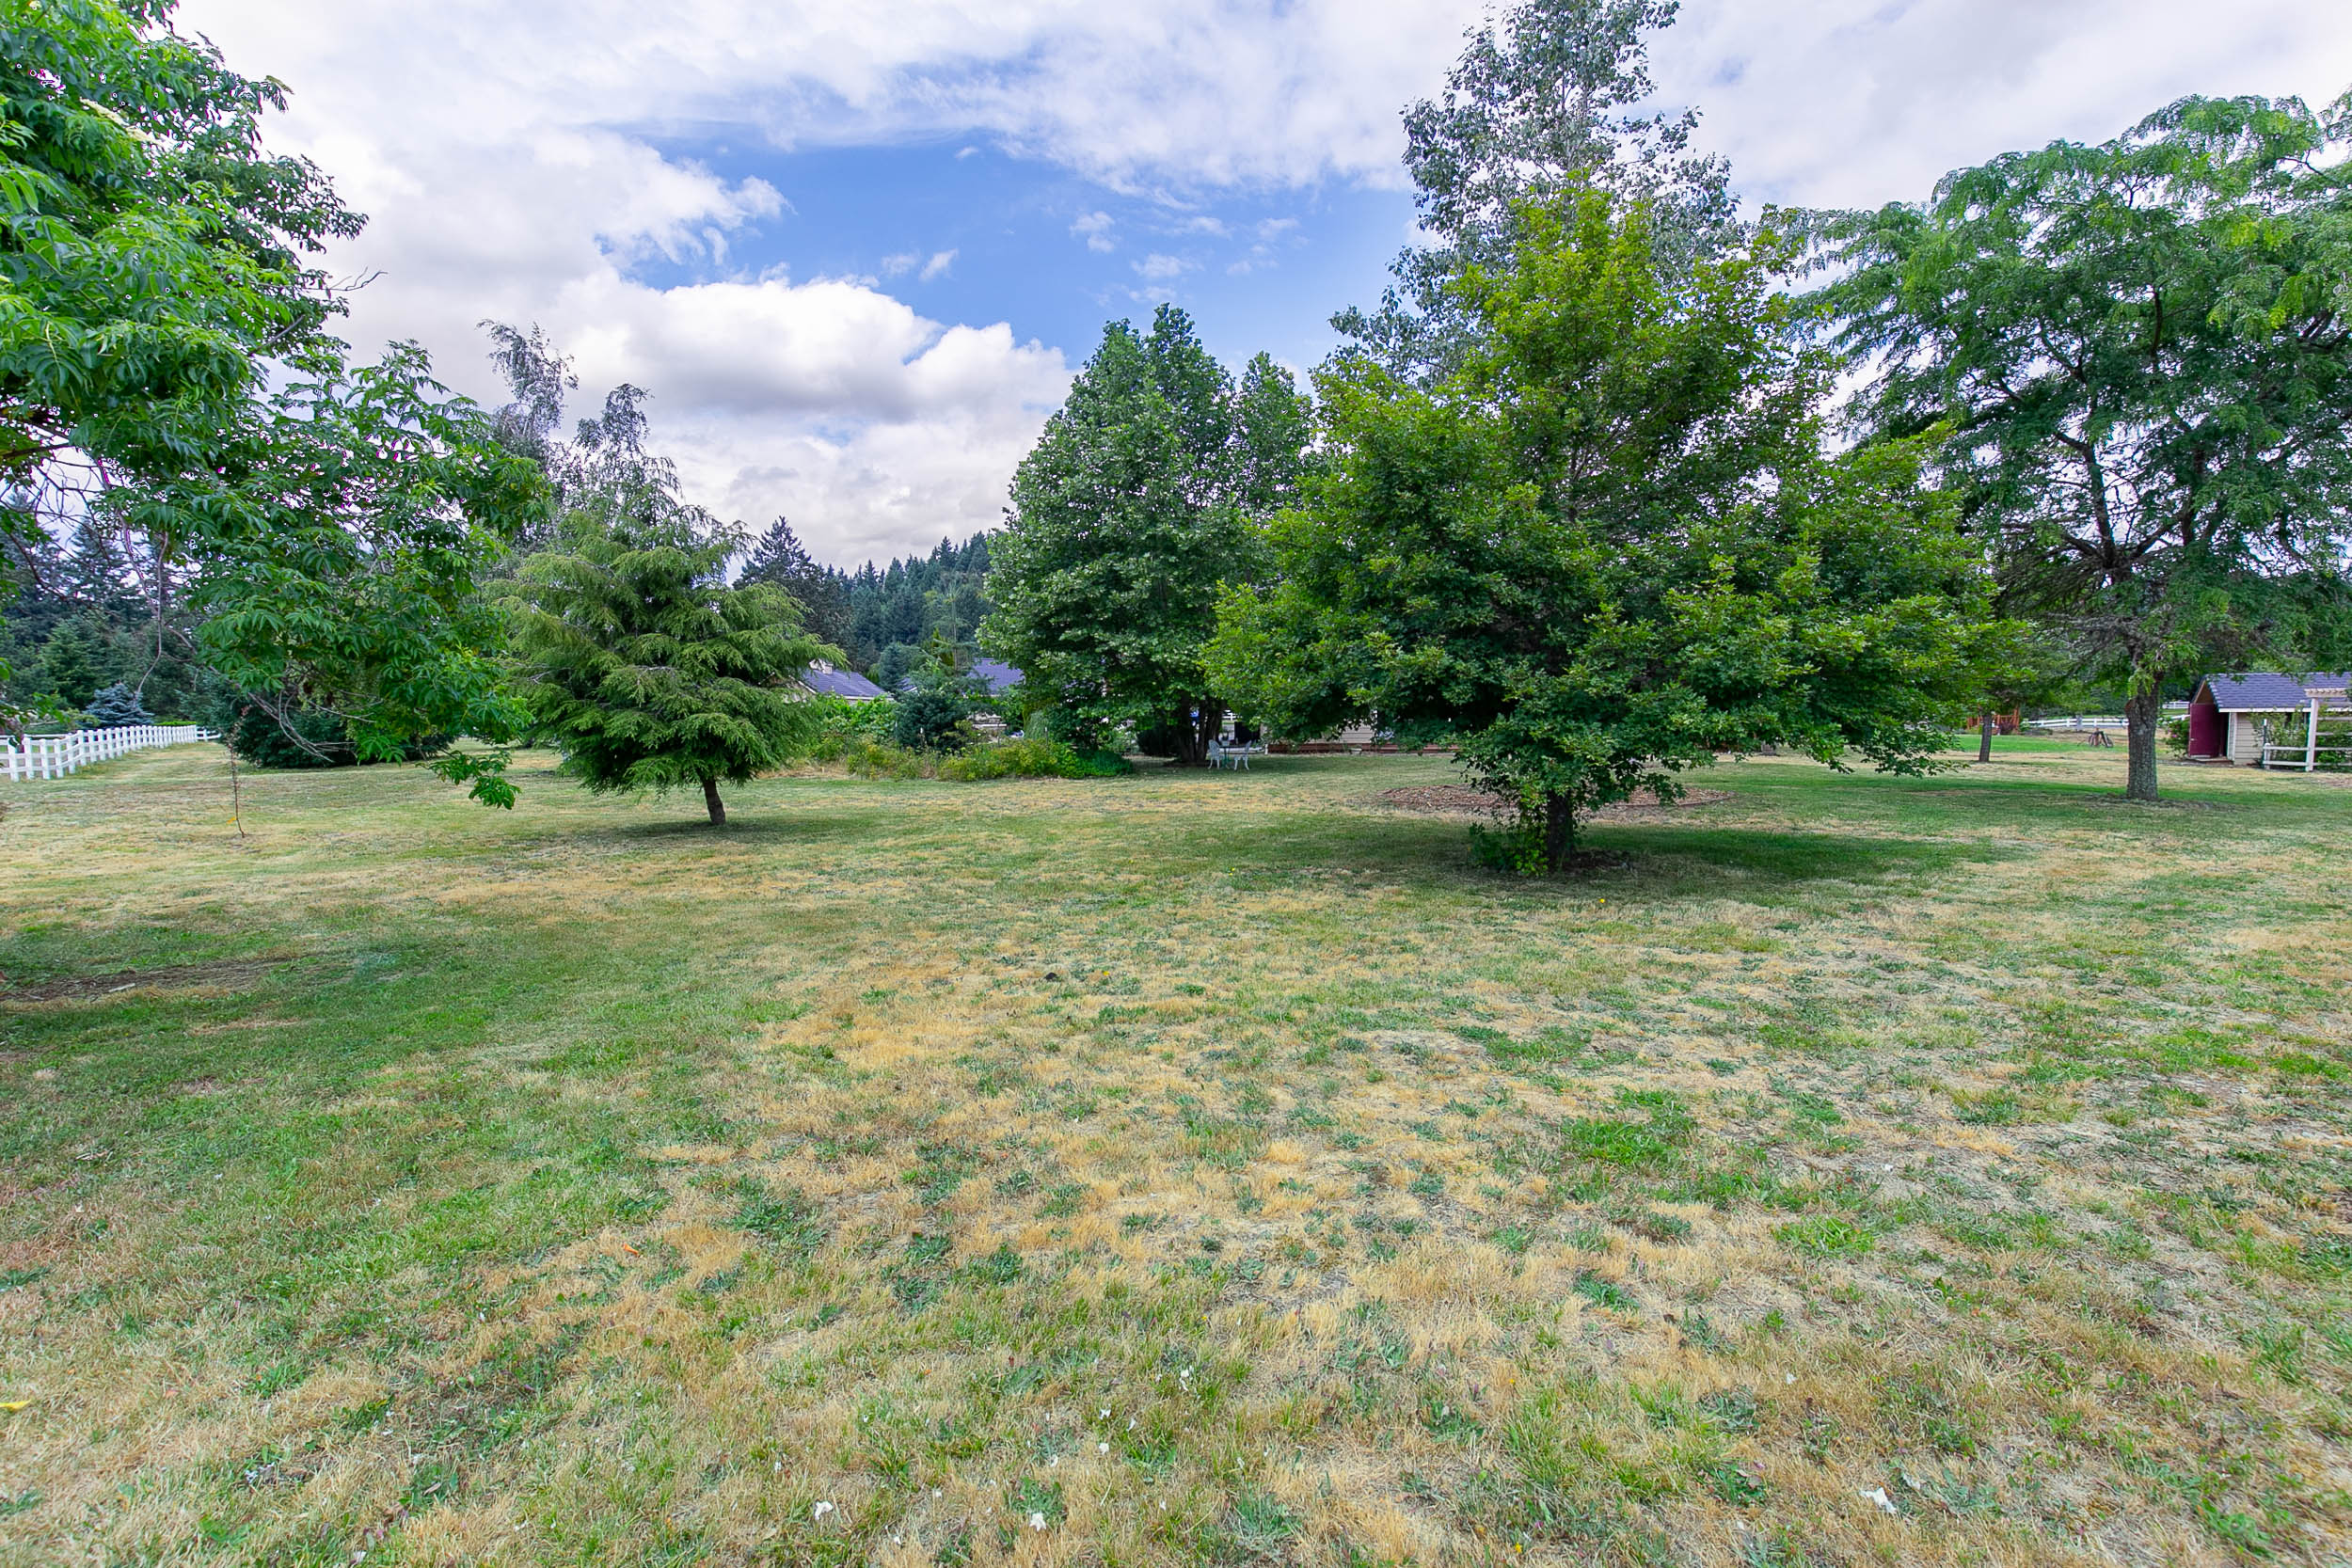 059_78376 Meadow Park Dr_MG_4431-HDR.jpg